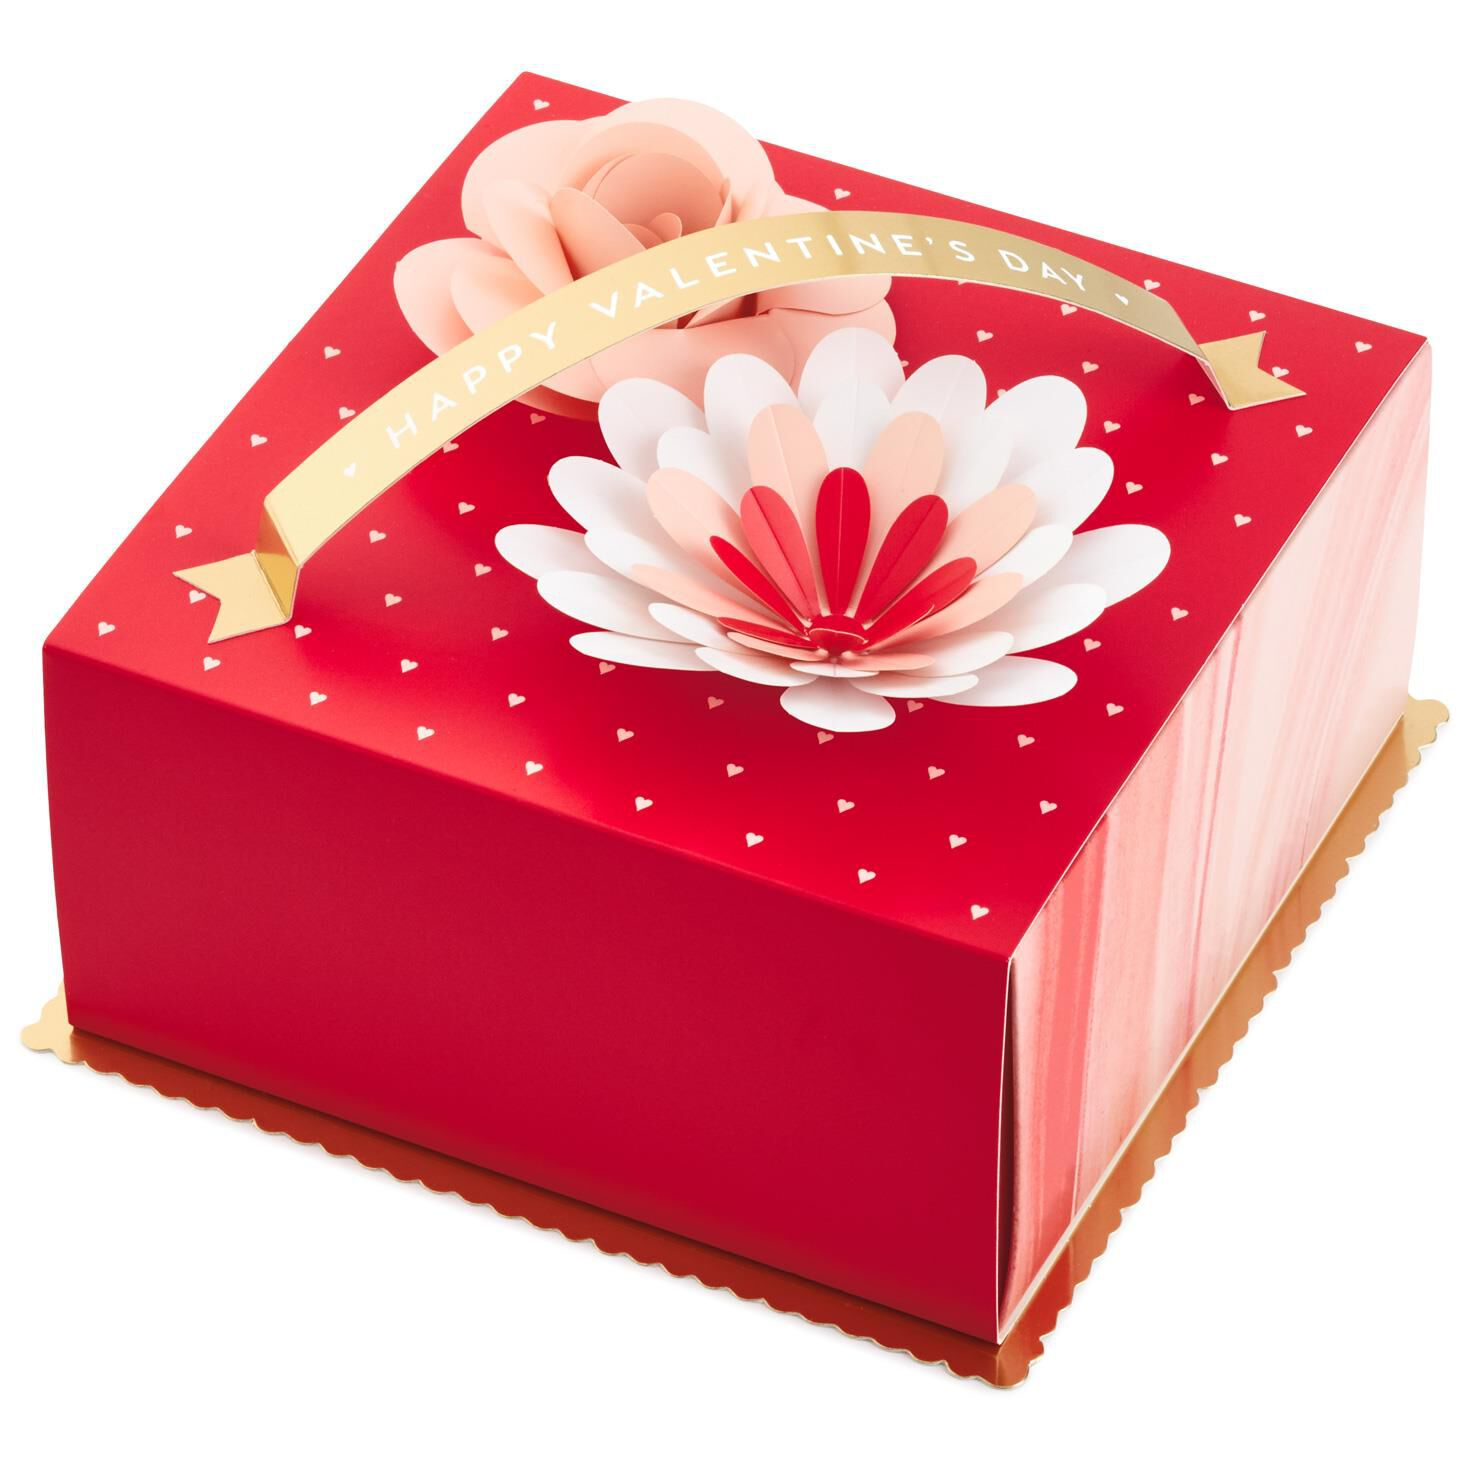 Happy Valentineu0027s Day Gift Box With Flowers ...  sc 1 st  Hallmark & Happy Valentineu0027s Day Gift Box With Flowers - Gift Boxes - Hallmark